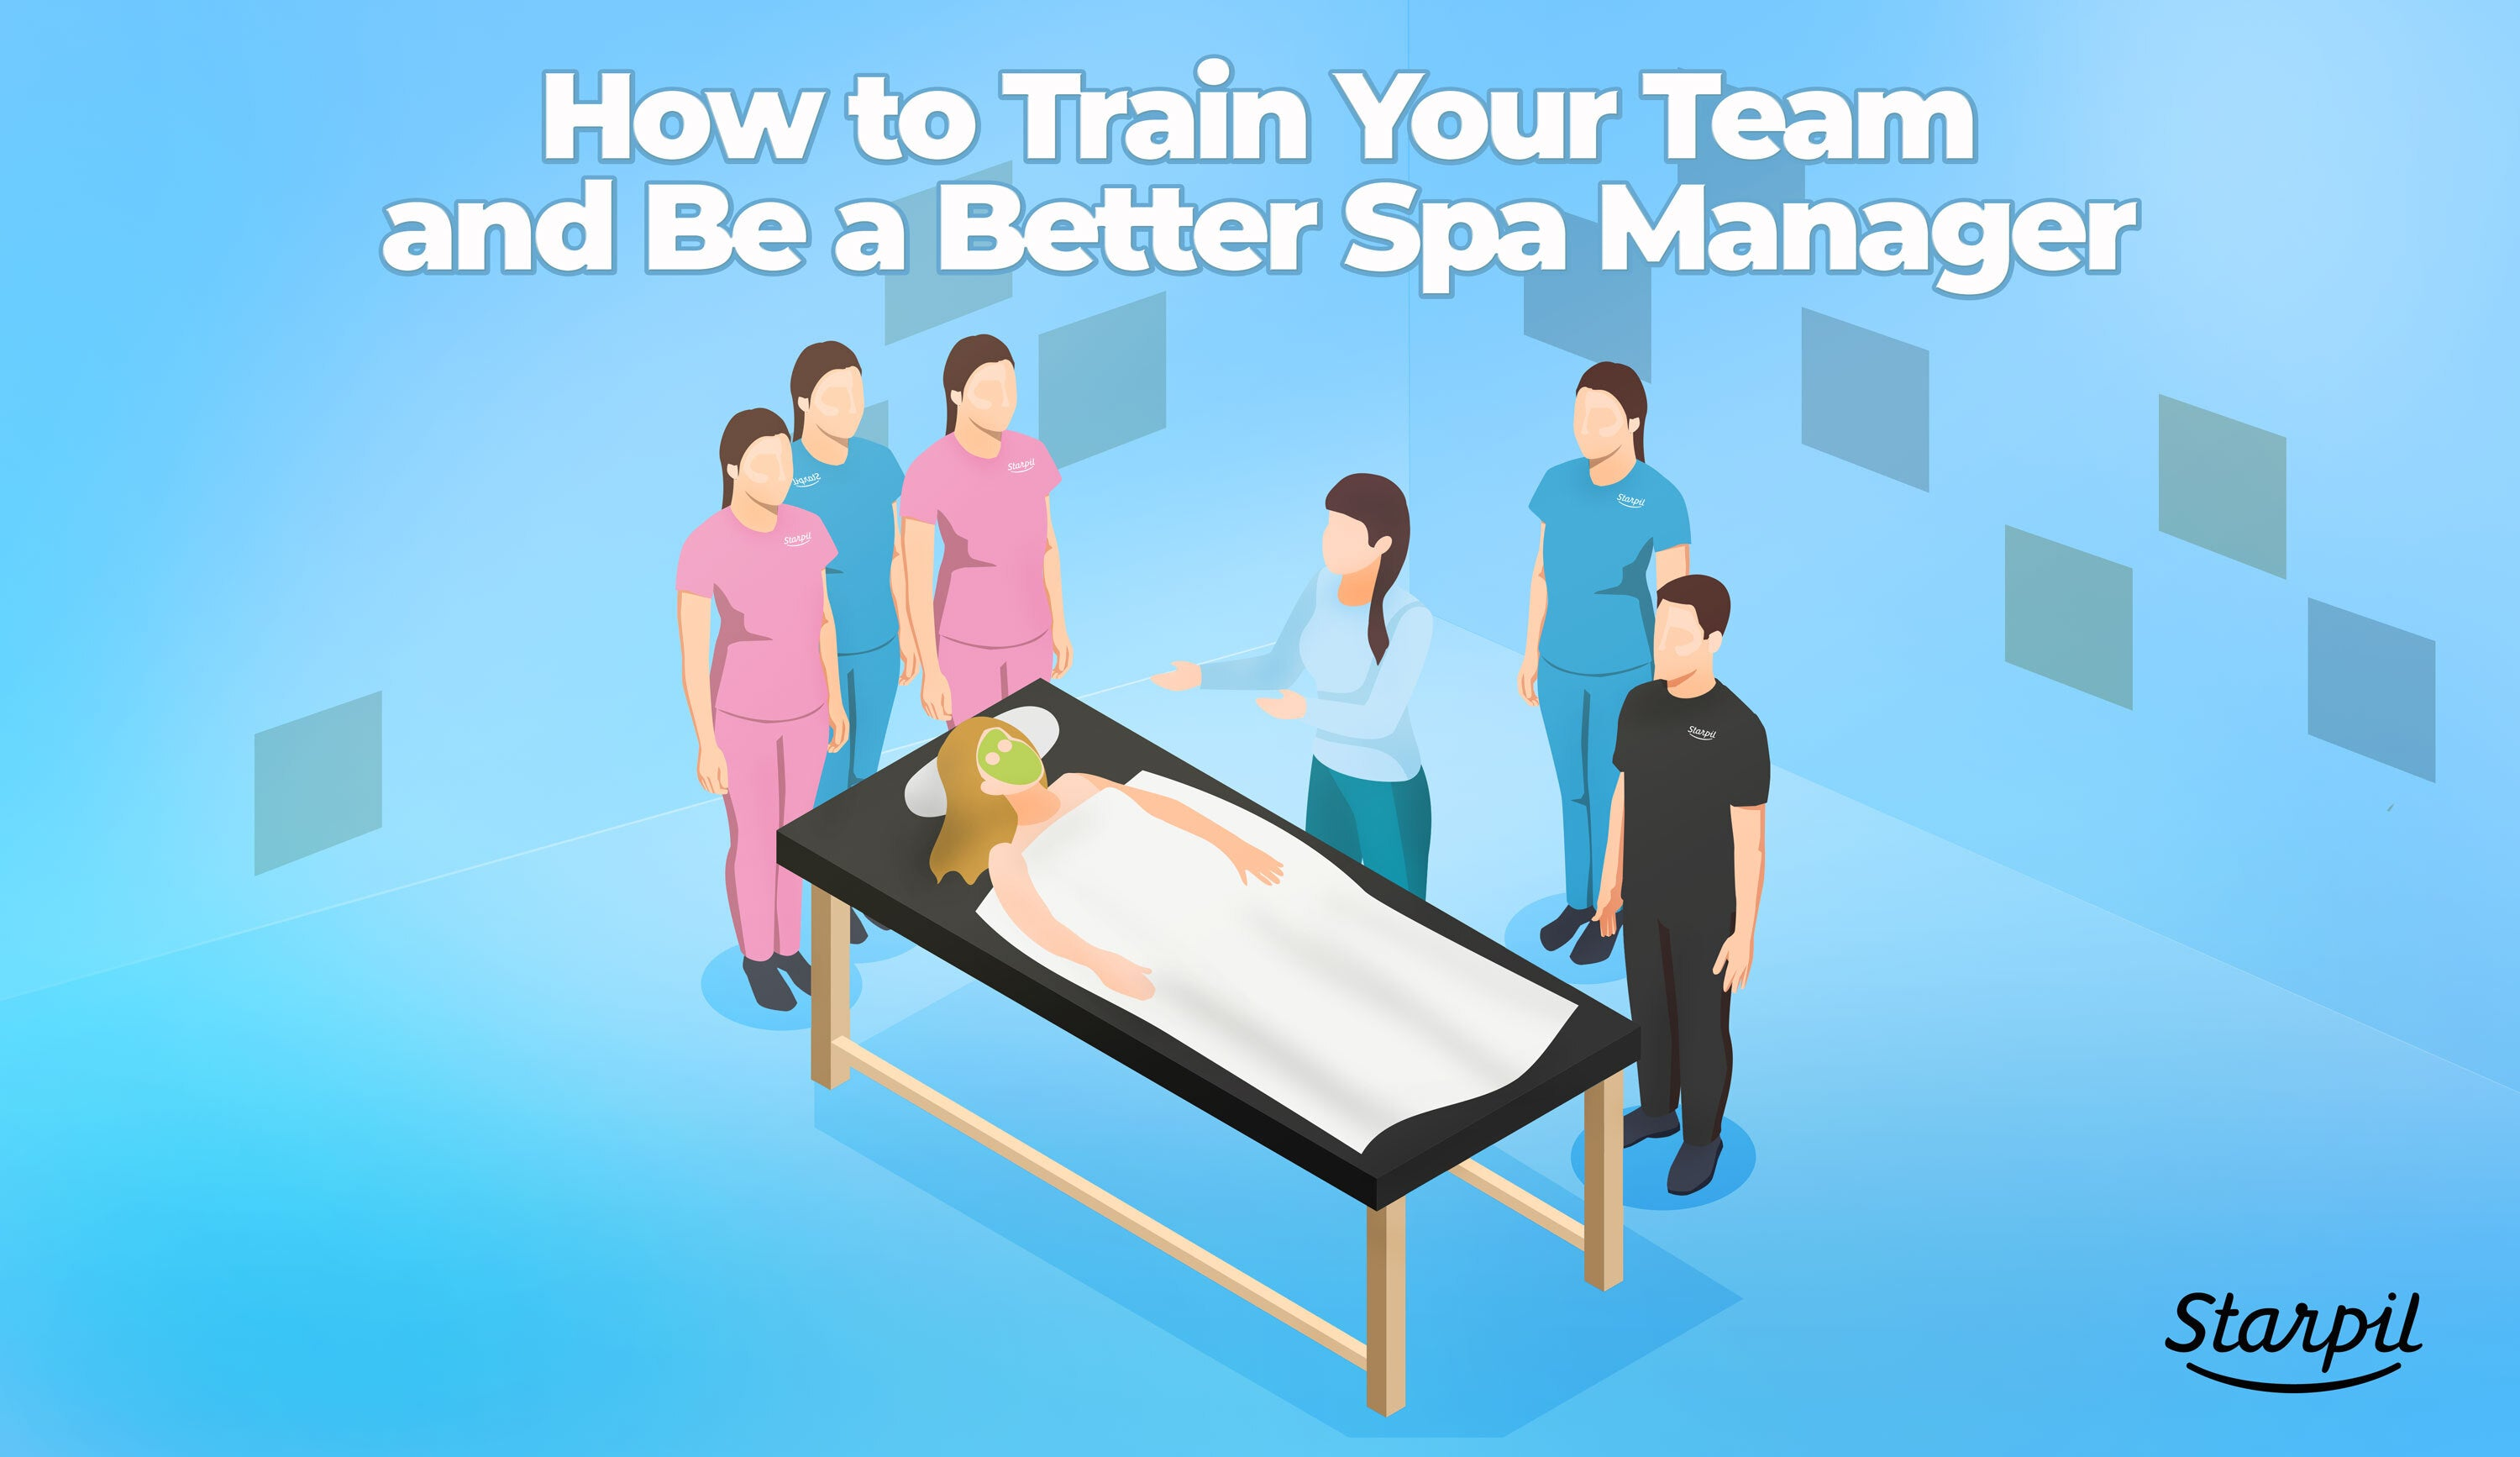 How to Train Your Salon Team and Be a Better Spa Manager